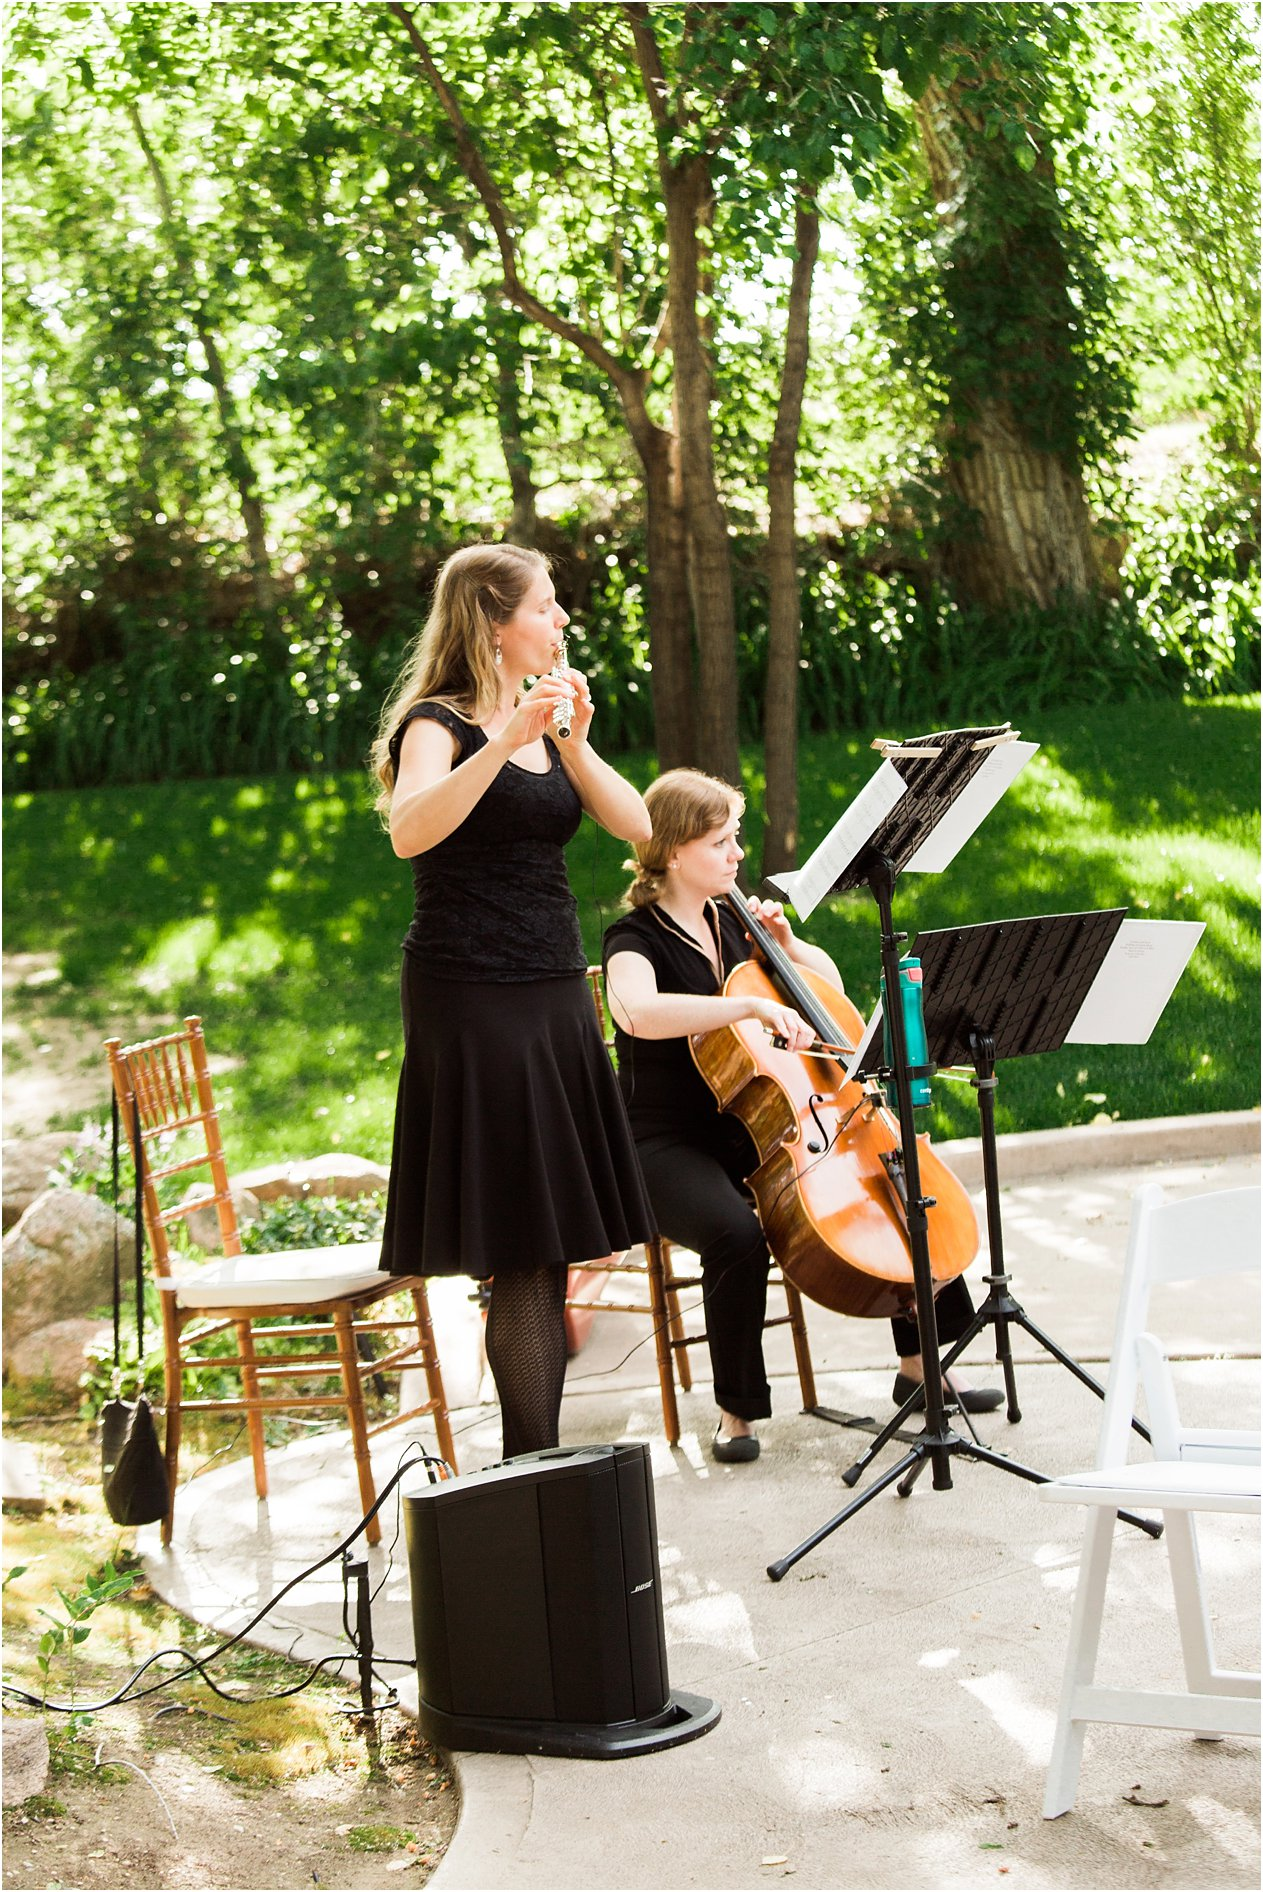 Flute and Cello duo in Fort Collins, Colorado, by Christen Stephens